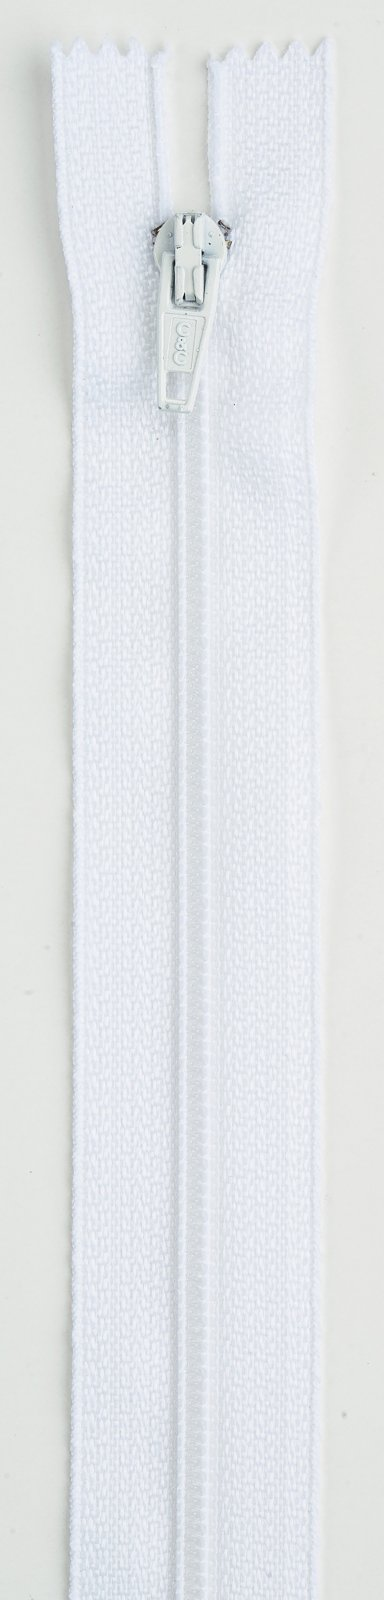 All-Purpose Polyester Coil Zipper 20in White